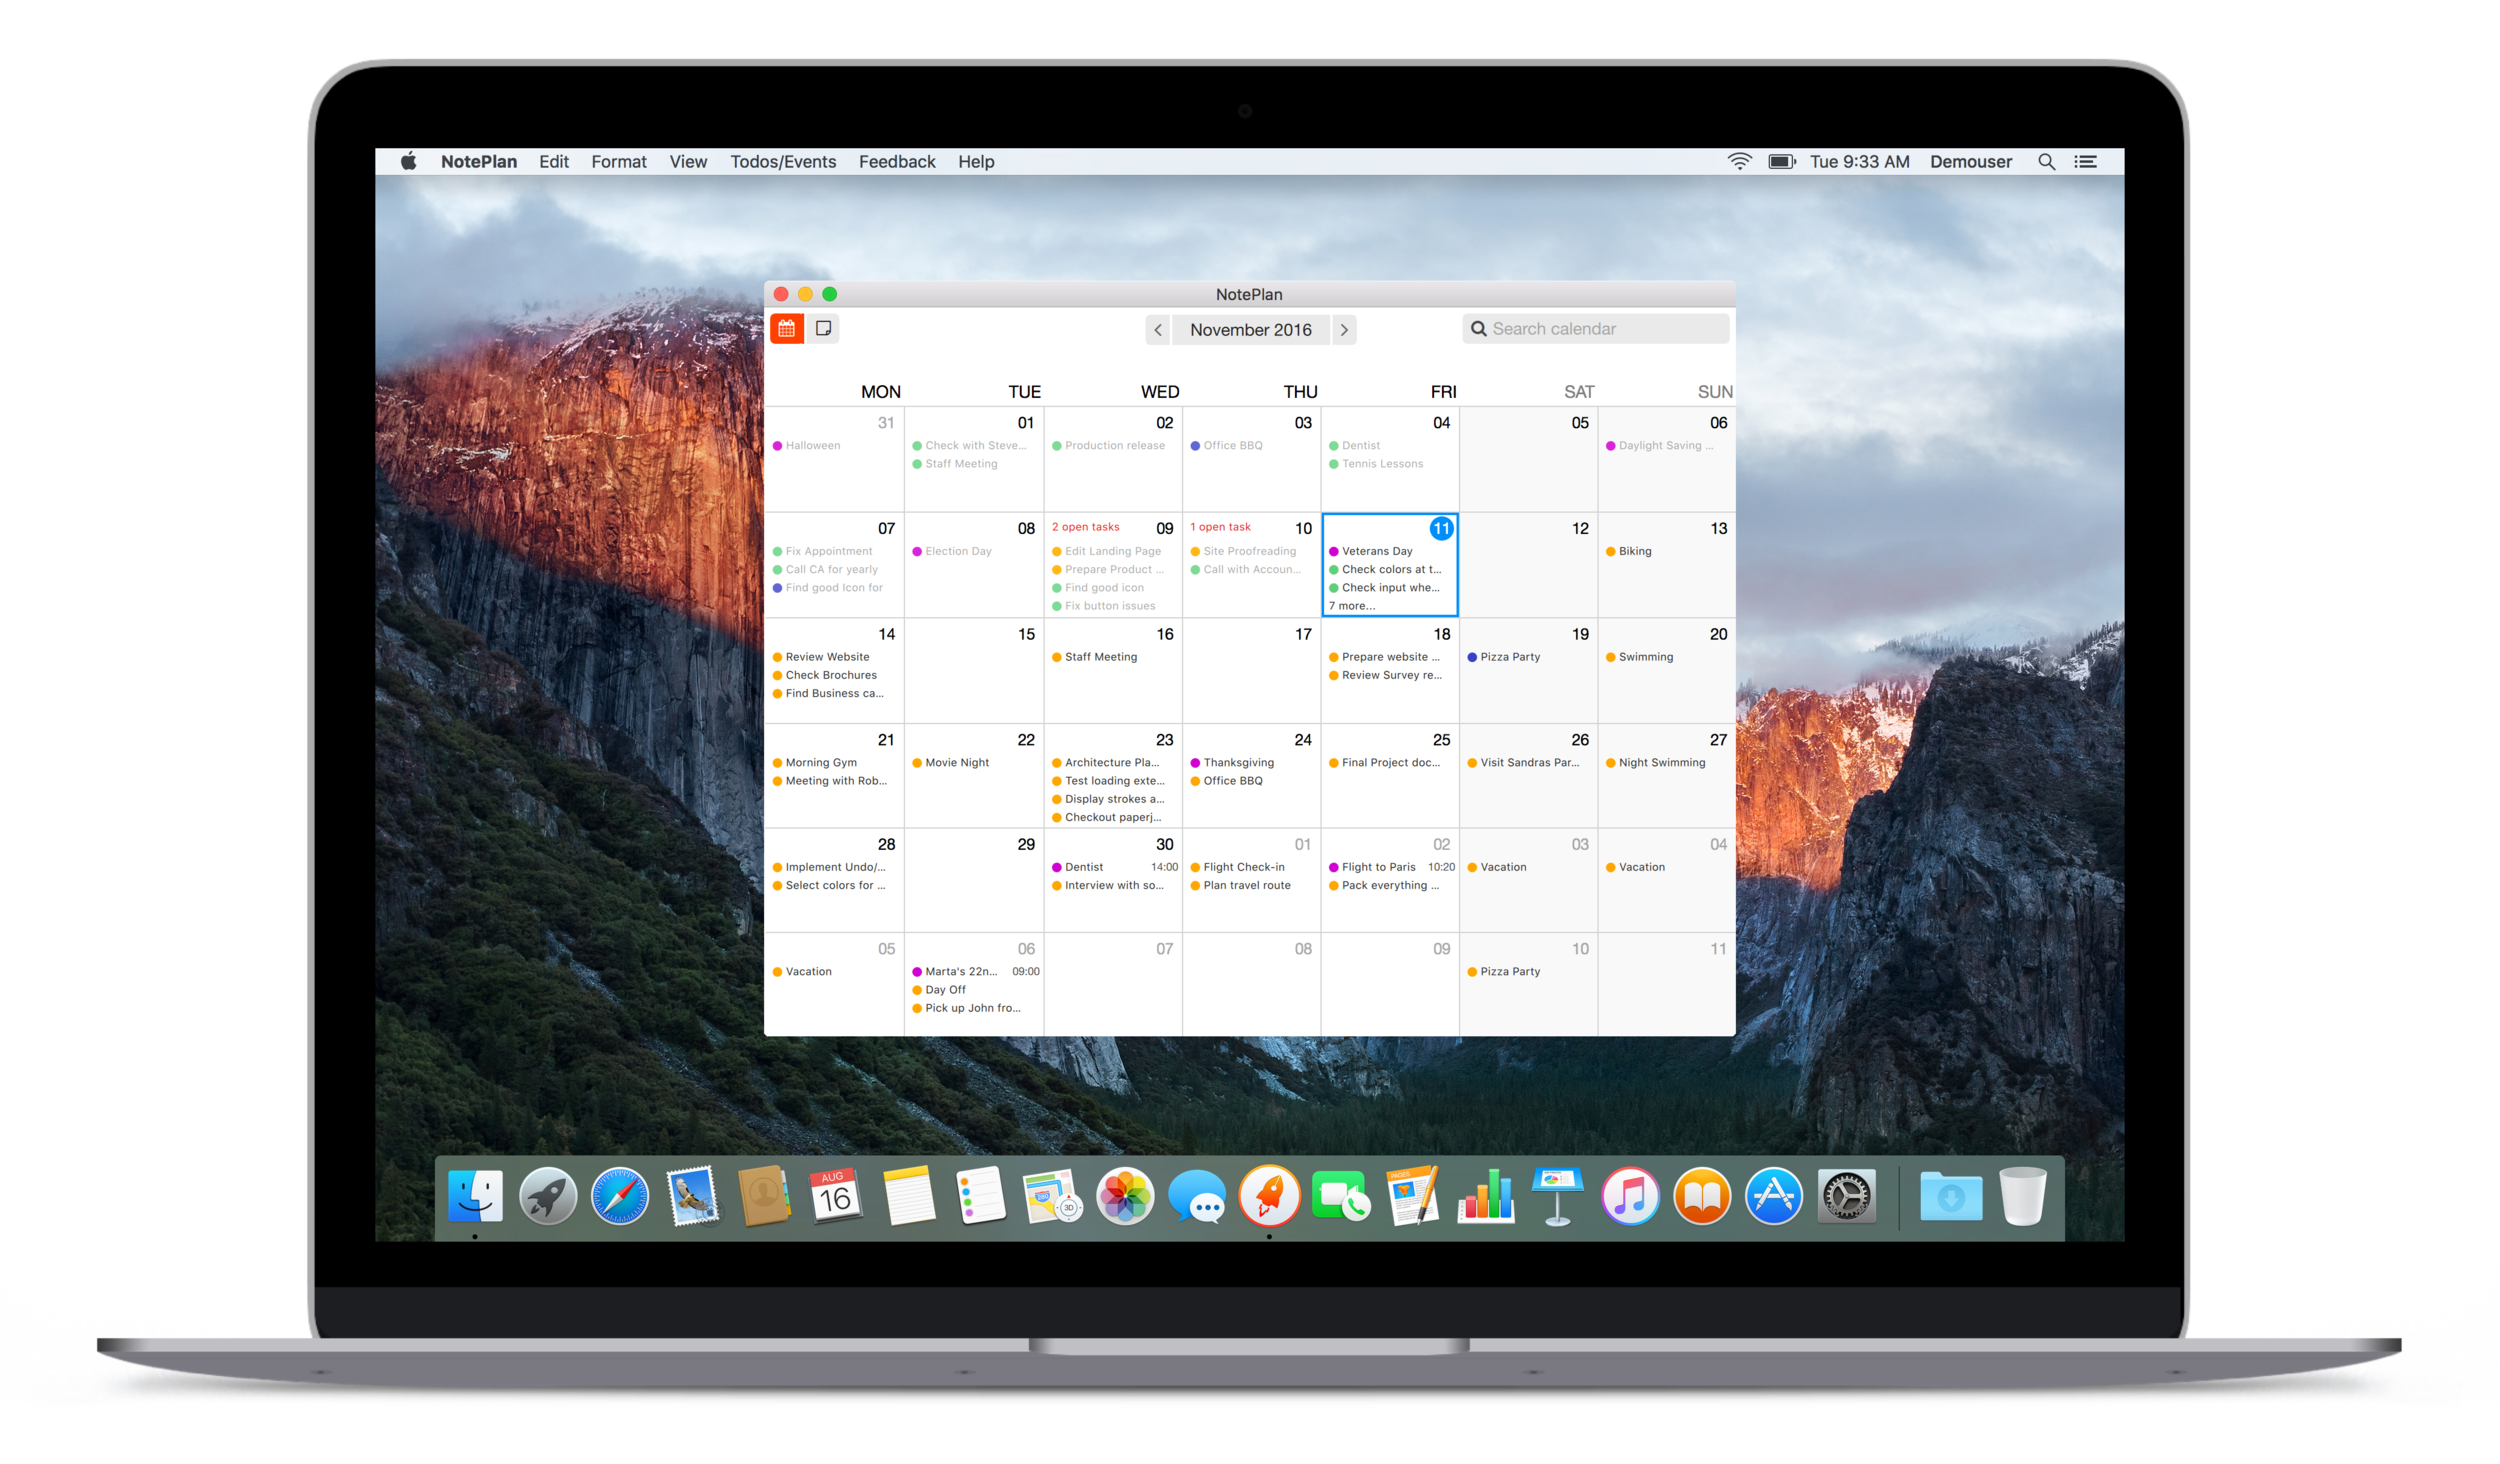 NotePlan macbook-screenshot-calendar2x - SAC student discount.png